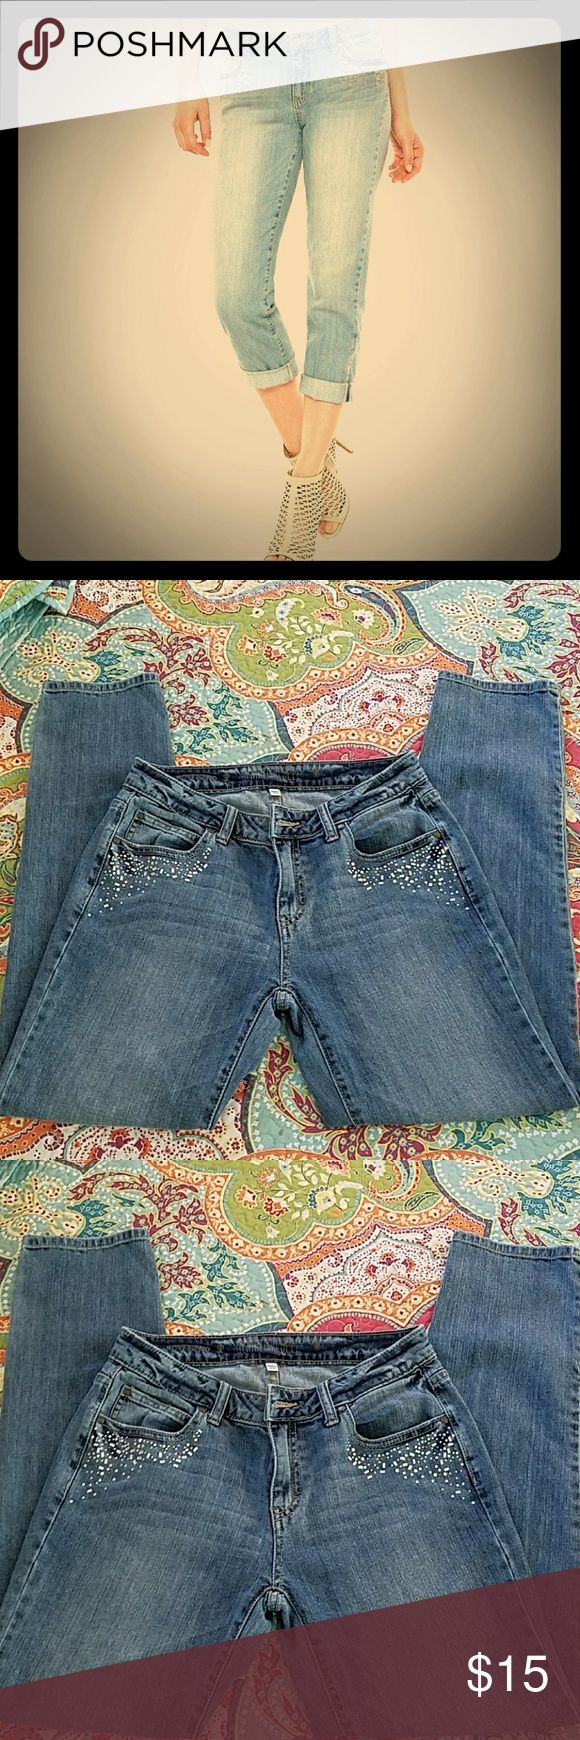 Jennifer Lopez Boyfriend jeans with Embellishments Great comfy go anywhere and do anything Boyfriend jeans with the cutest subtle rhinestone embellishments   size 2L.   Might have been worn once. Jennifer Lopez Jeans Boyfriend